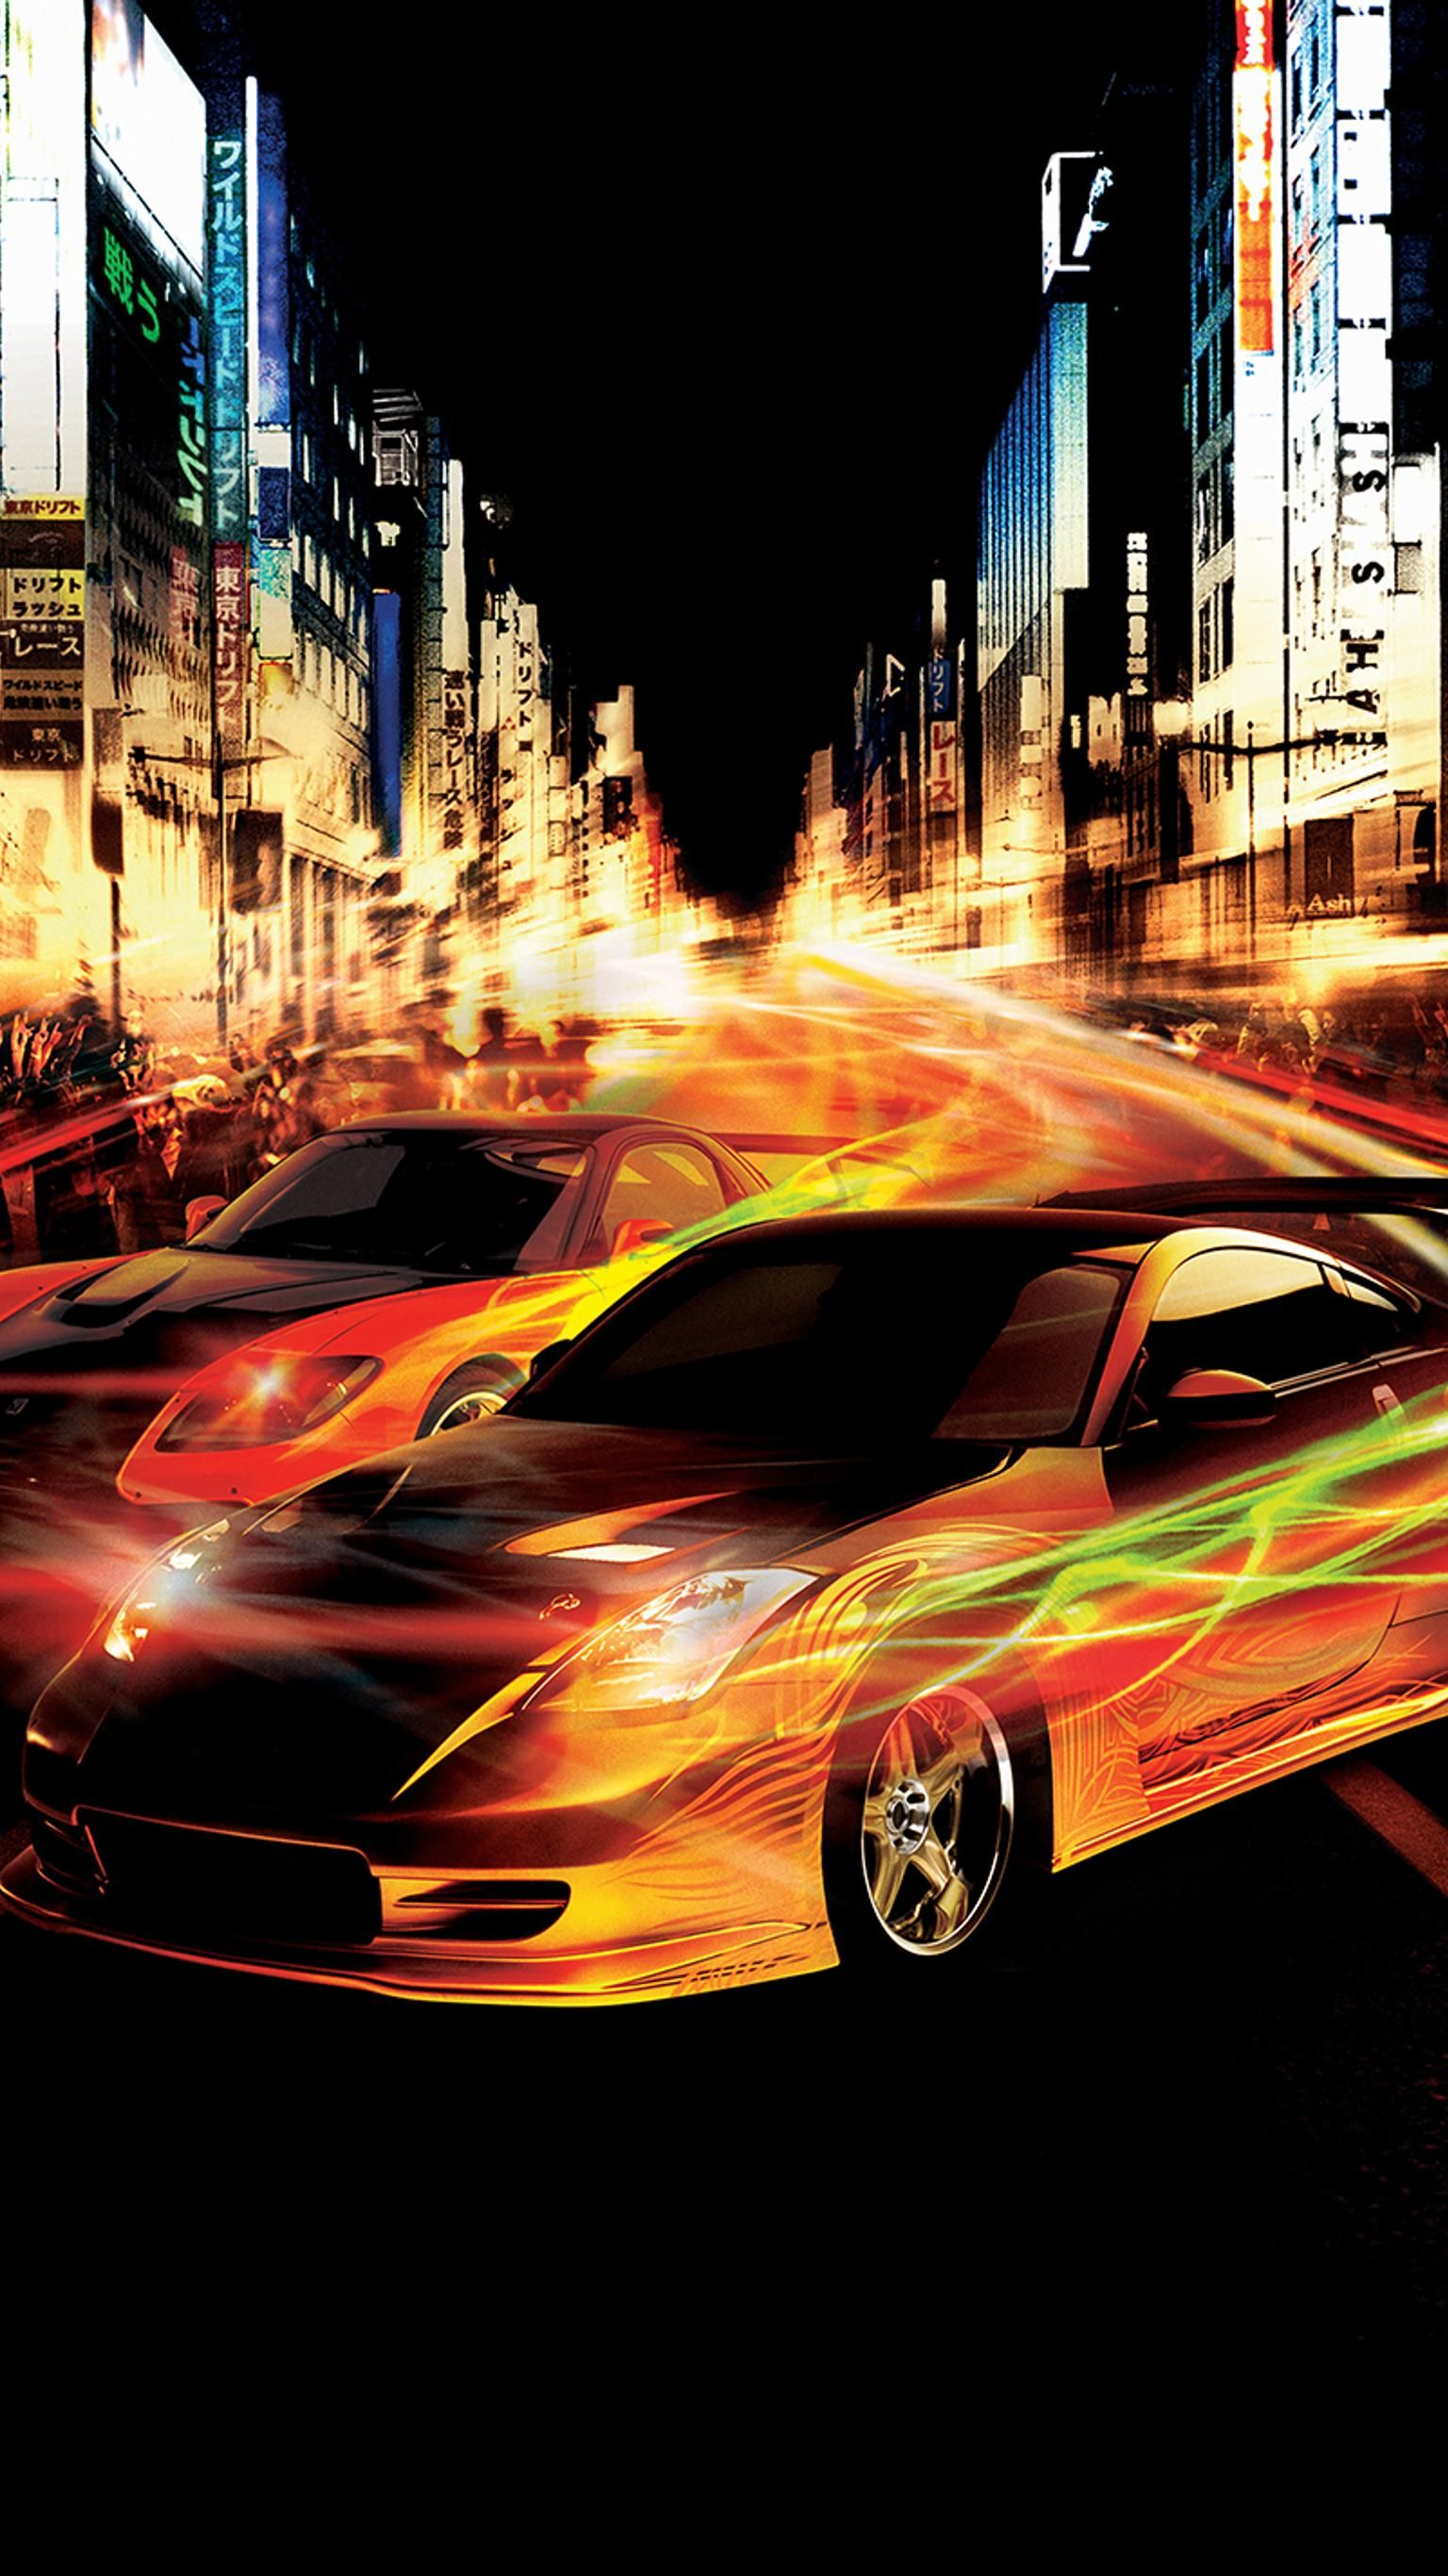 The Fast and the Furious: Tokyo Drift (2006) Phone Wallpaper | Moviemania